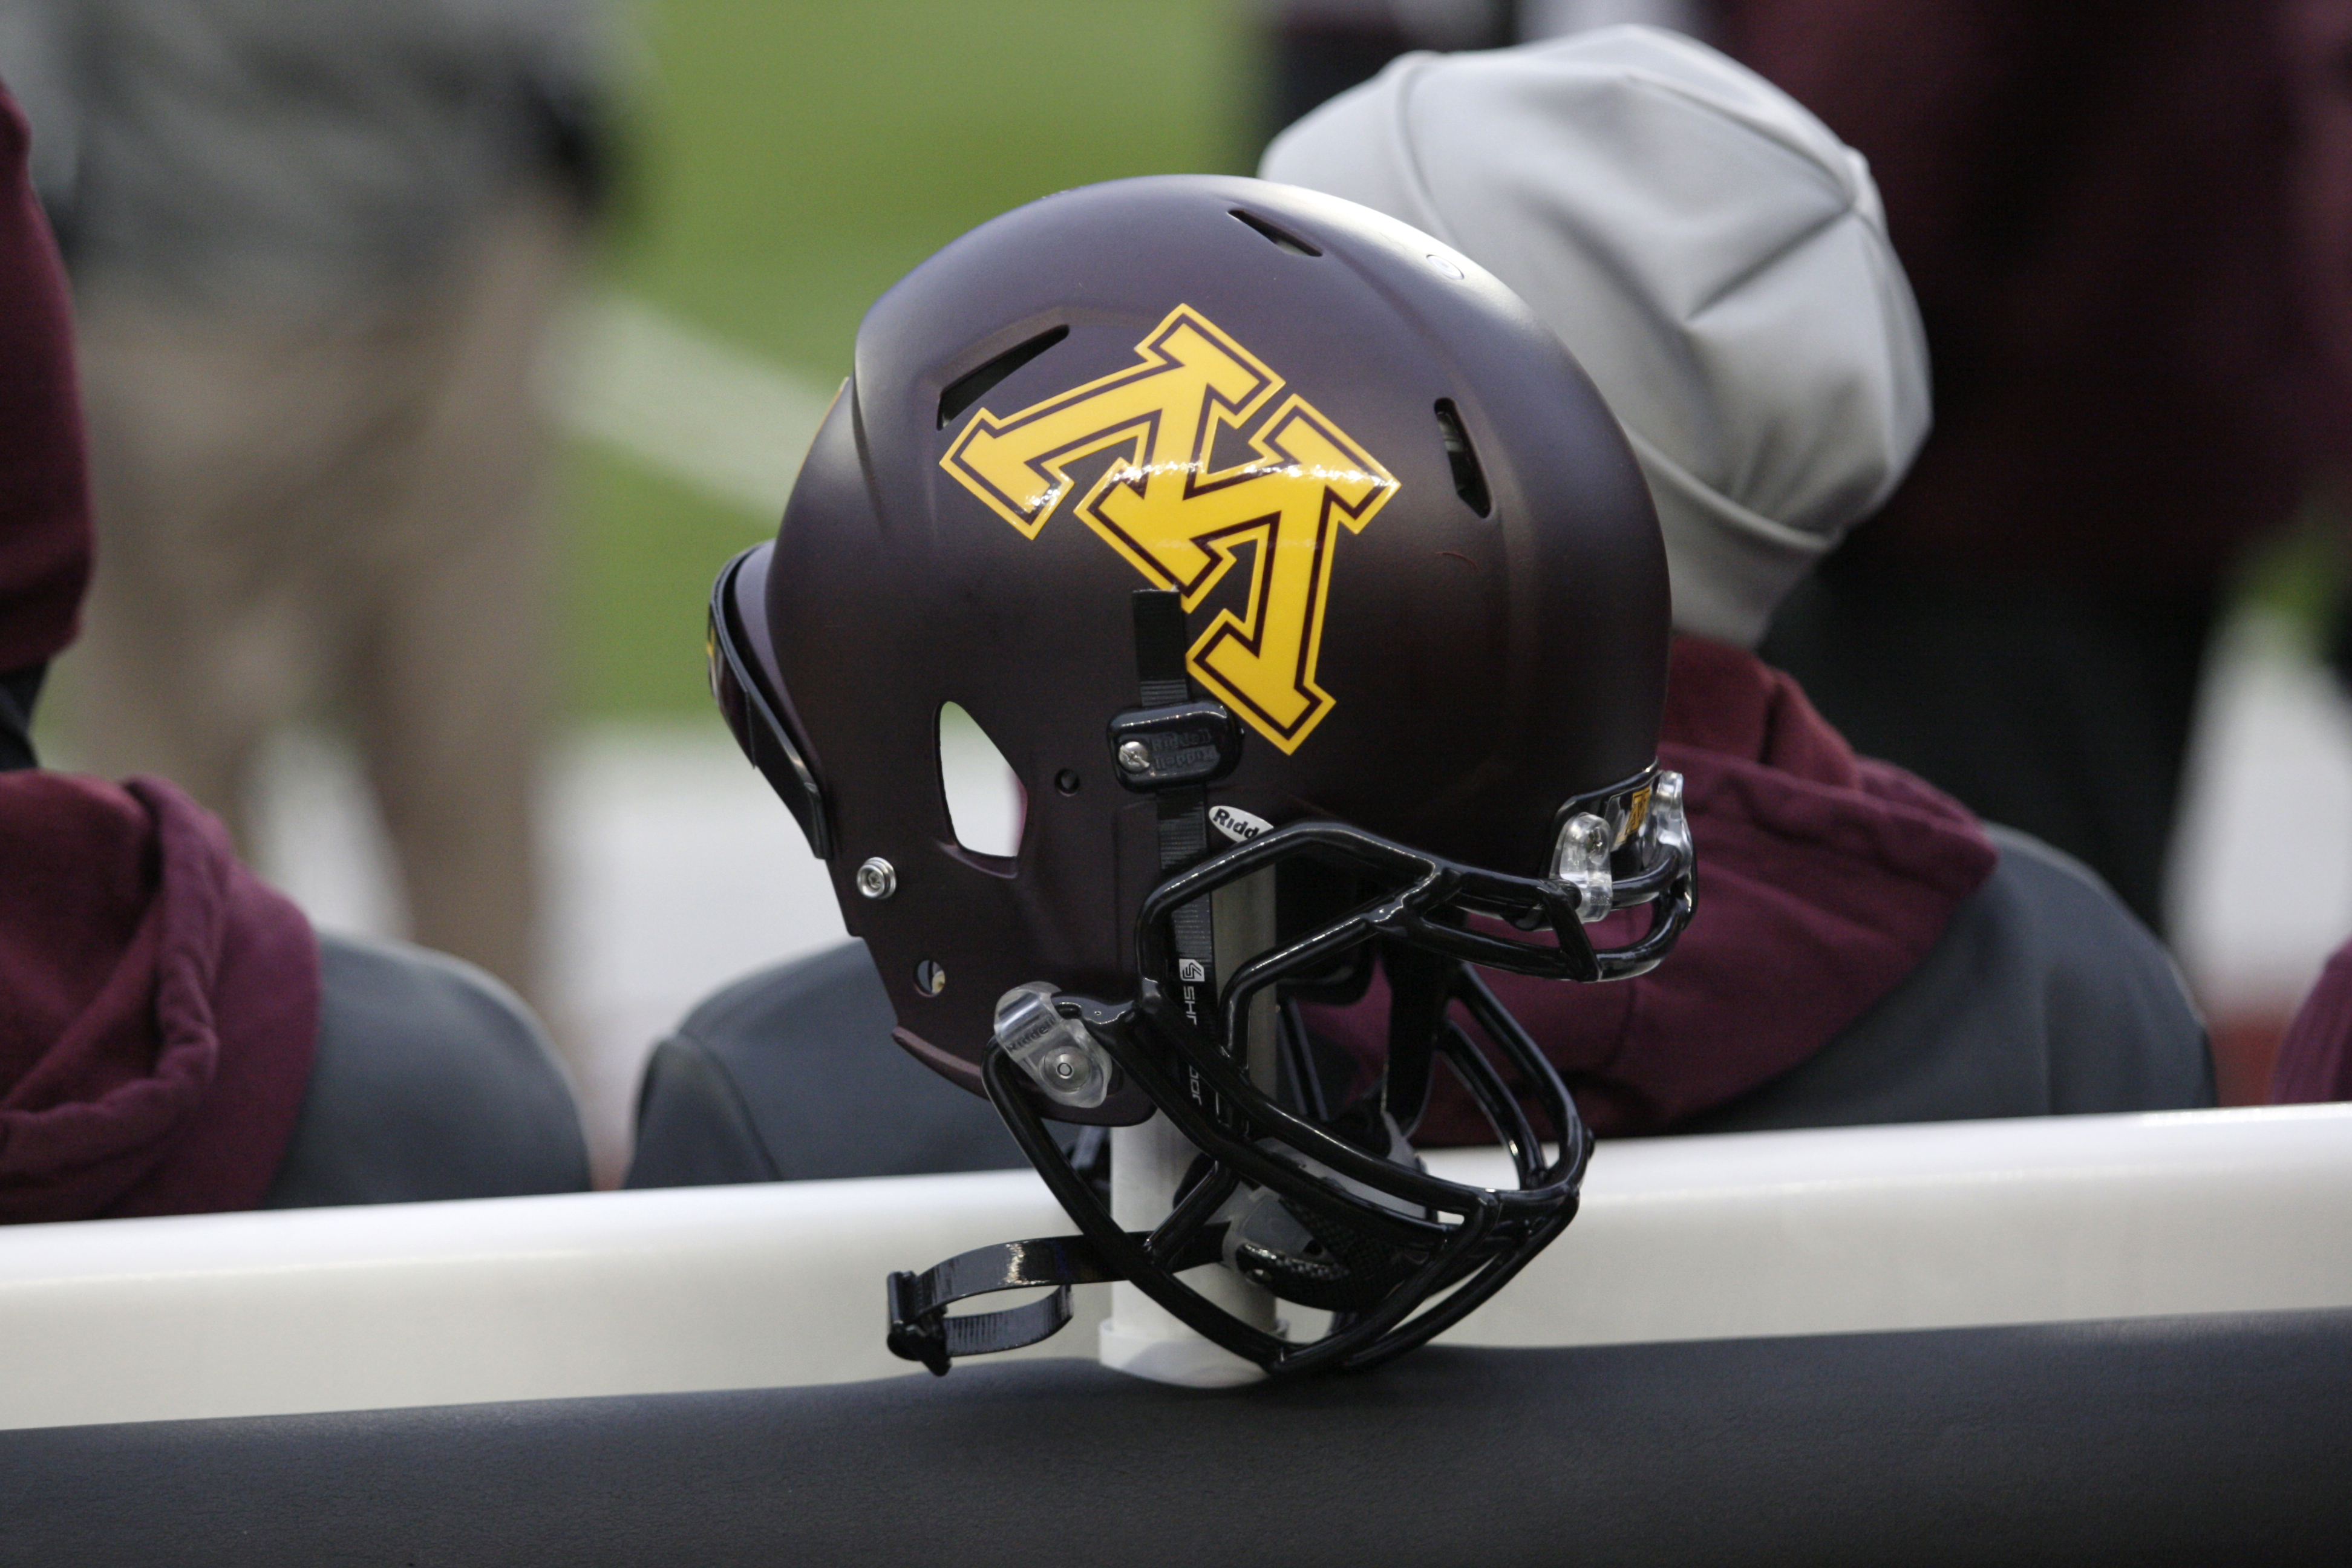 FILE - In this Nov. 24, 2012, file photo, a Minnesota helmet hangs on a sideline heater during an NCAA college football game against Michigan State, in Minneapolis. Ten Minnesota football players were suspended this week following a fresh investigation in